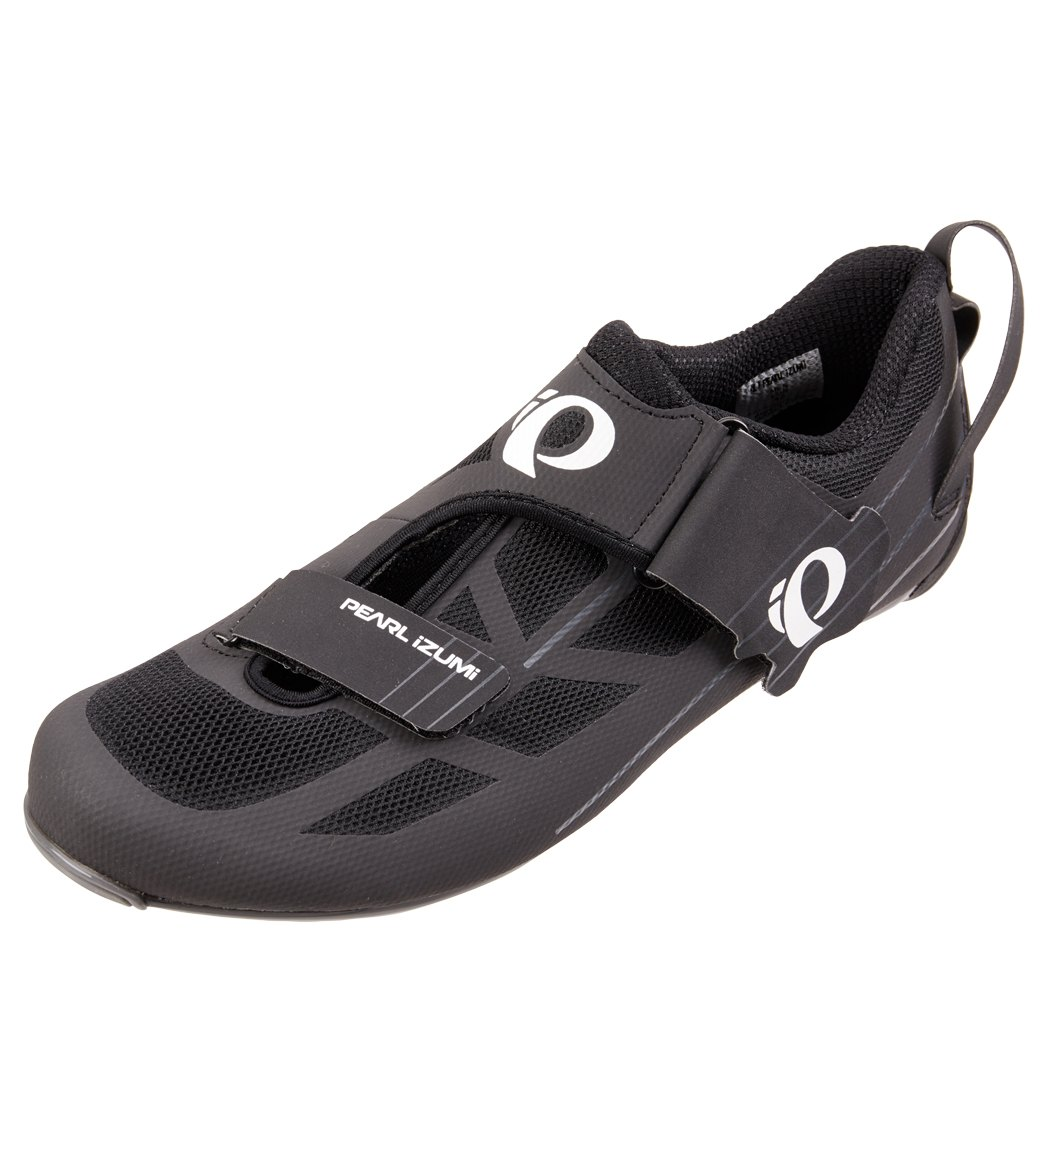 1e2c0358613e Pearl Izumi Men s Tri Fly Select v6 Cycling Shoes at SwimOutlet.com - Free  Shipping